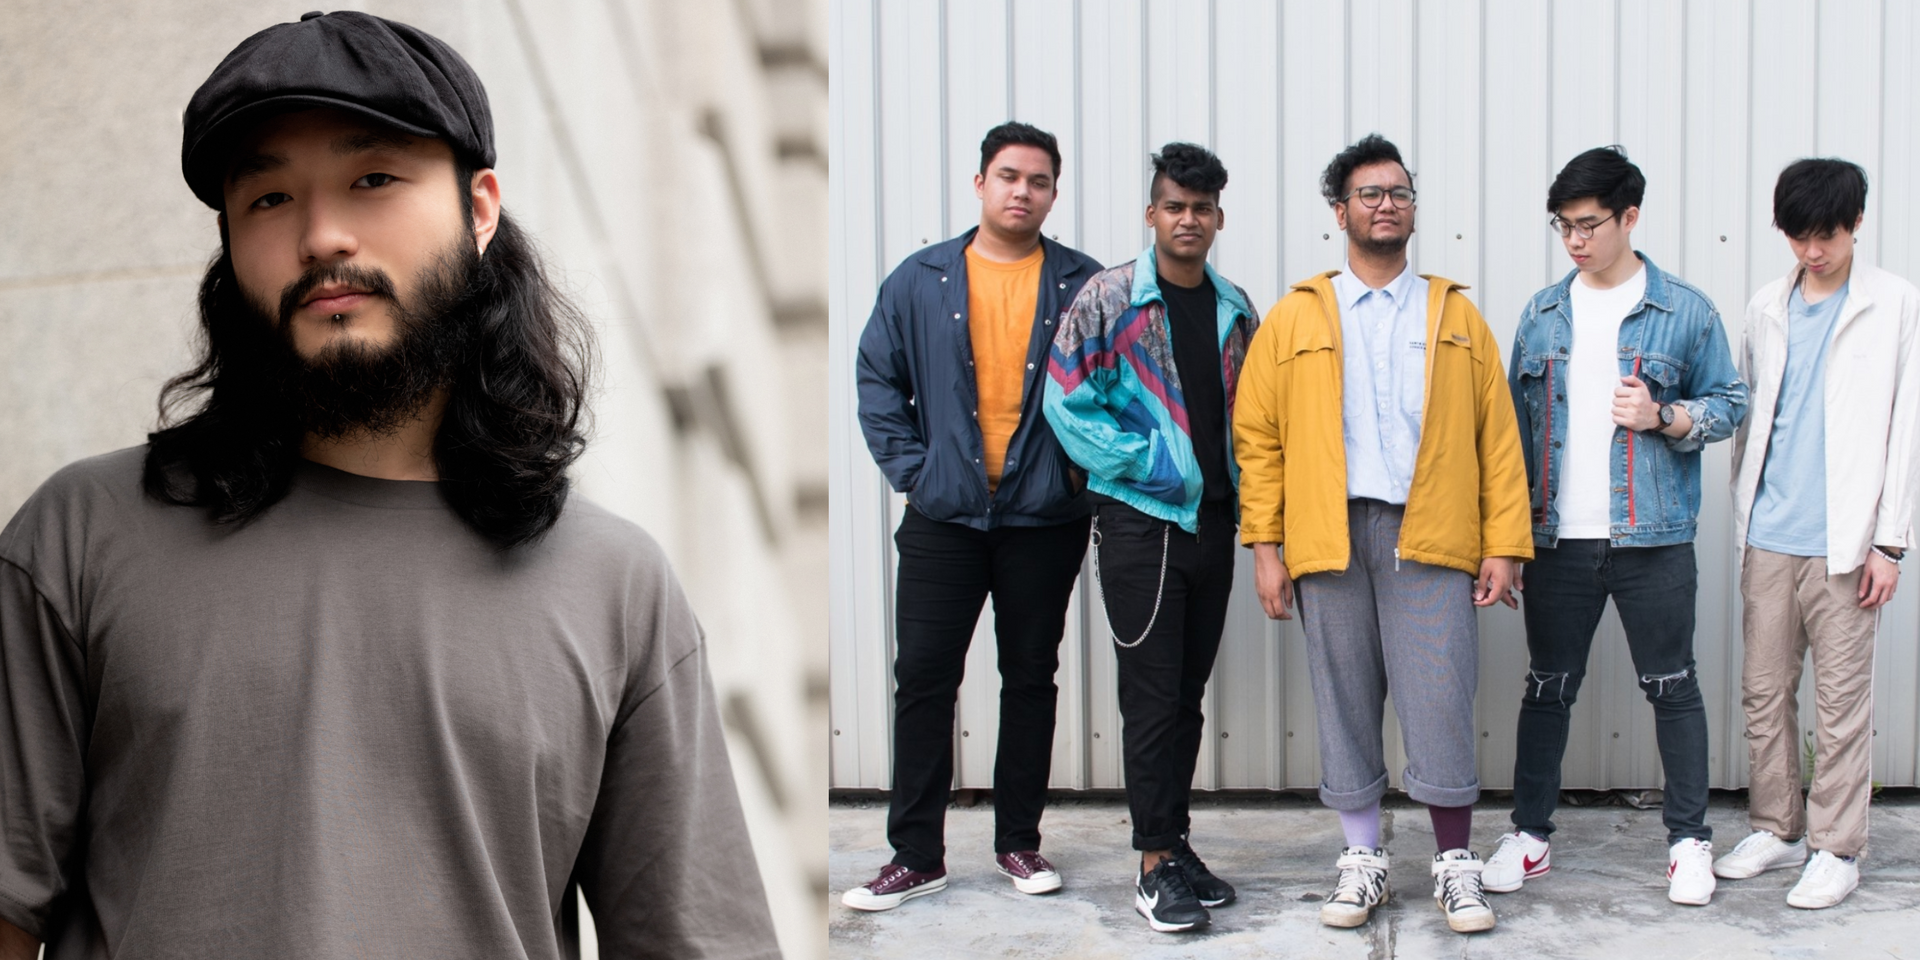 Glen Wee and Lost Spaces to perform alongside Of Monsters And Men in Singapore